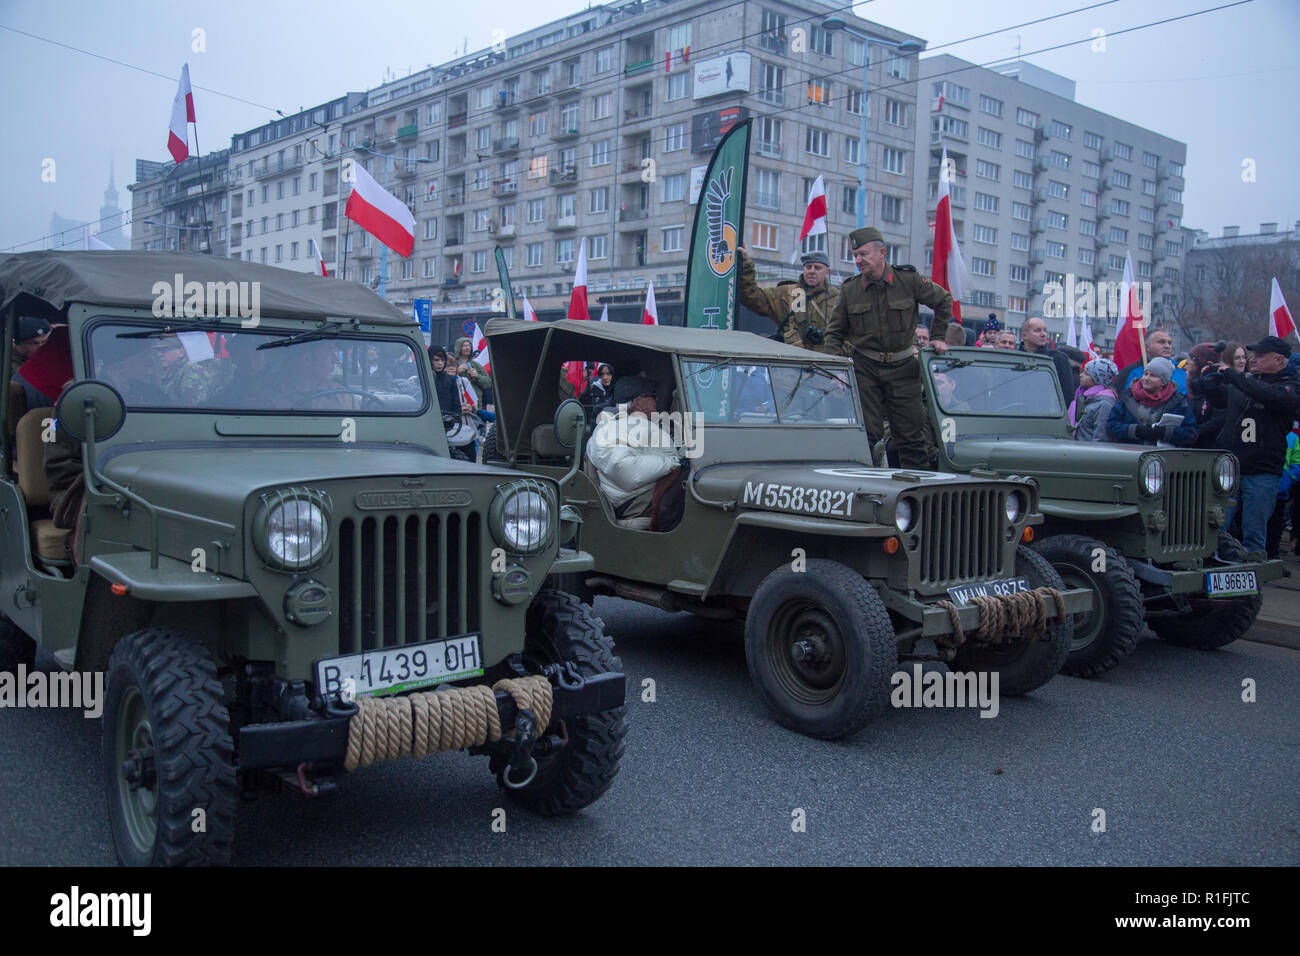 Warsaw, Poland, 11 November 2018: Celebrations of Polish Independence Day in a mass march that gathered more than 200 thousand people. Jeep Willys Viasa and Jeep Willys vehicles Stock Photo